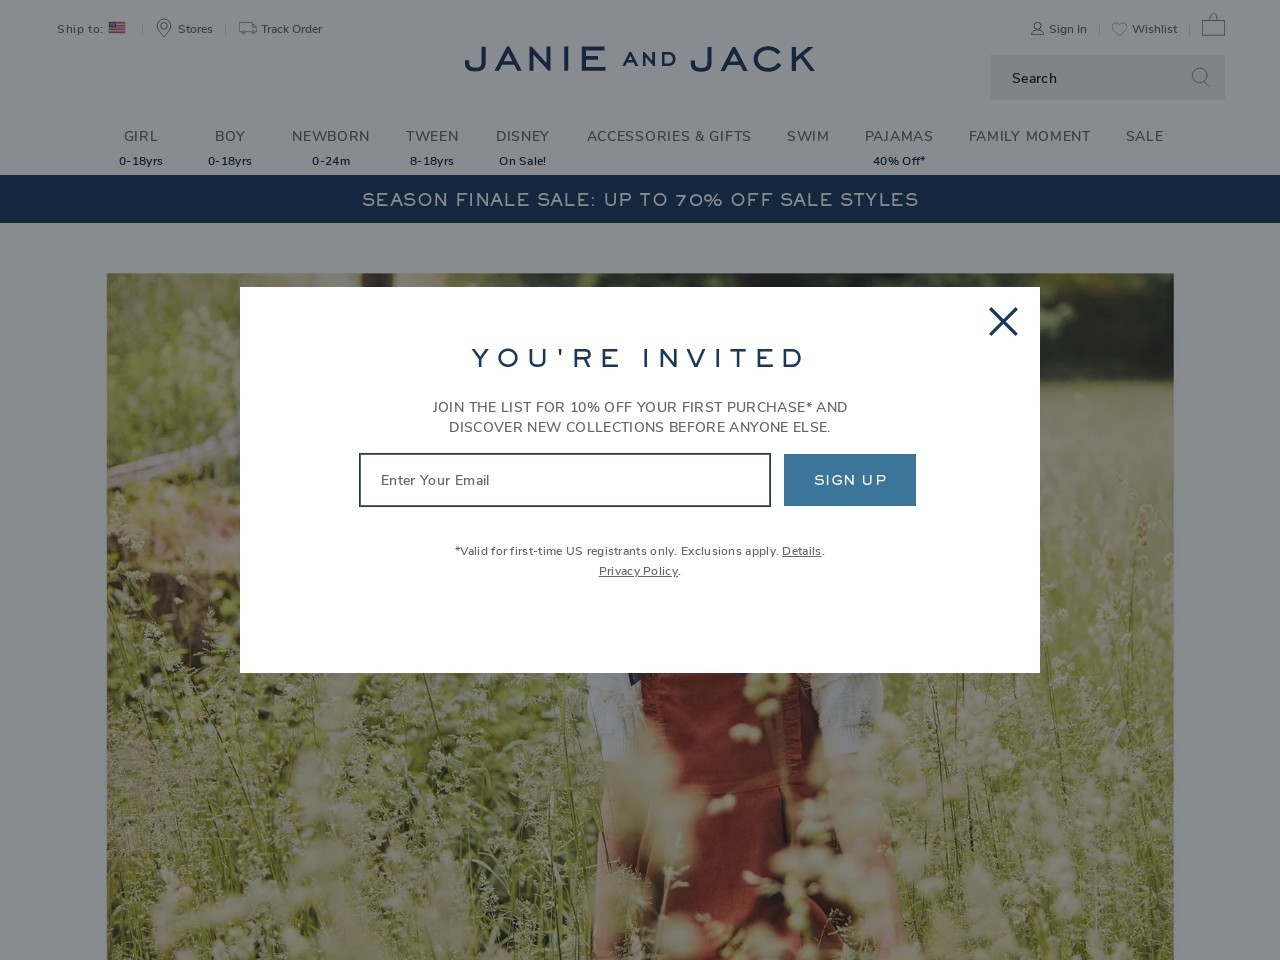 http://www.janieandjack.com/lp/summertotreasure/index.html